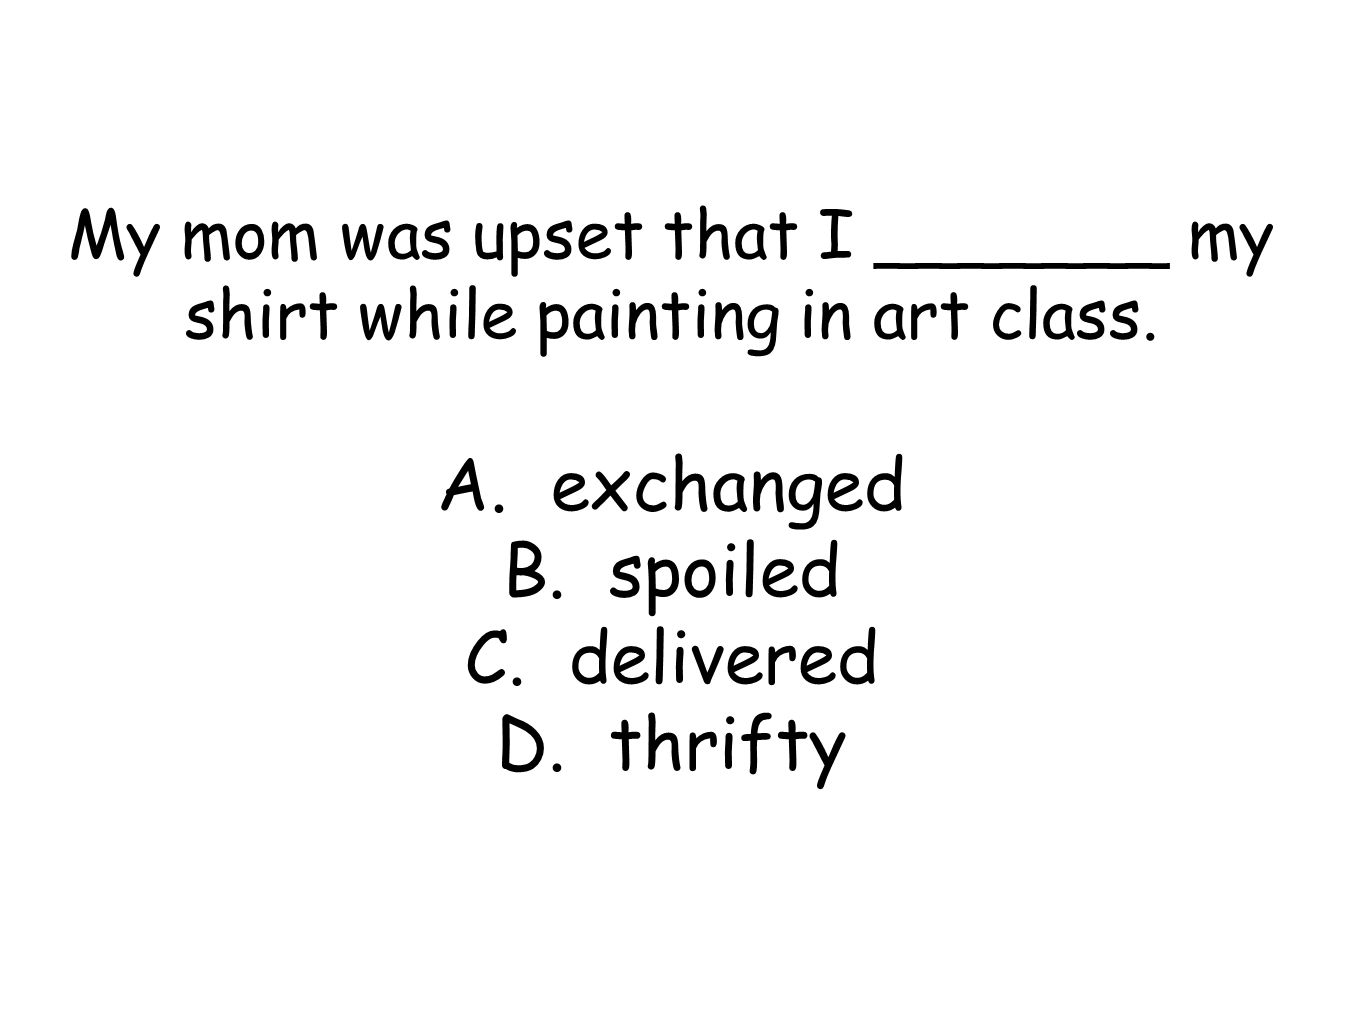 My mom was upset that I _______ my shirt while painting in art class. A. exchanged B. spoiled C. delivered D. thrifty